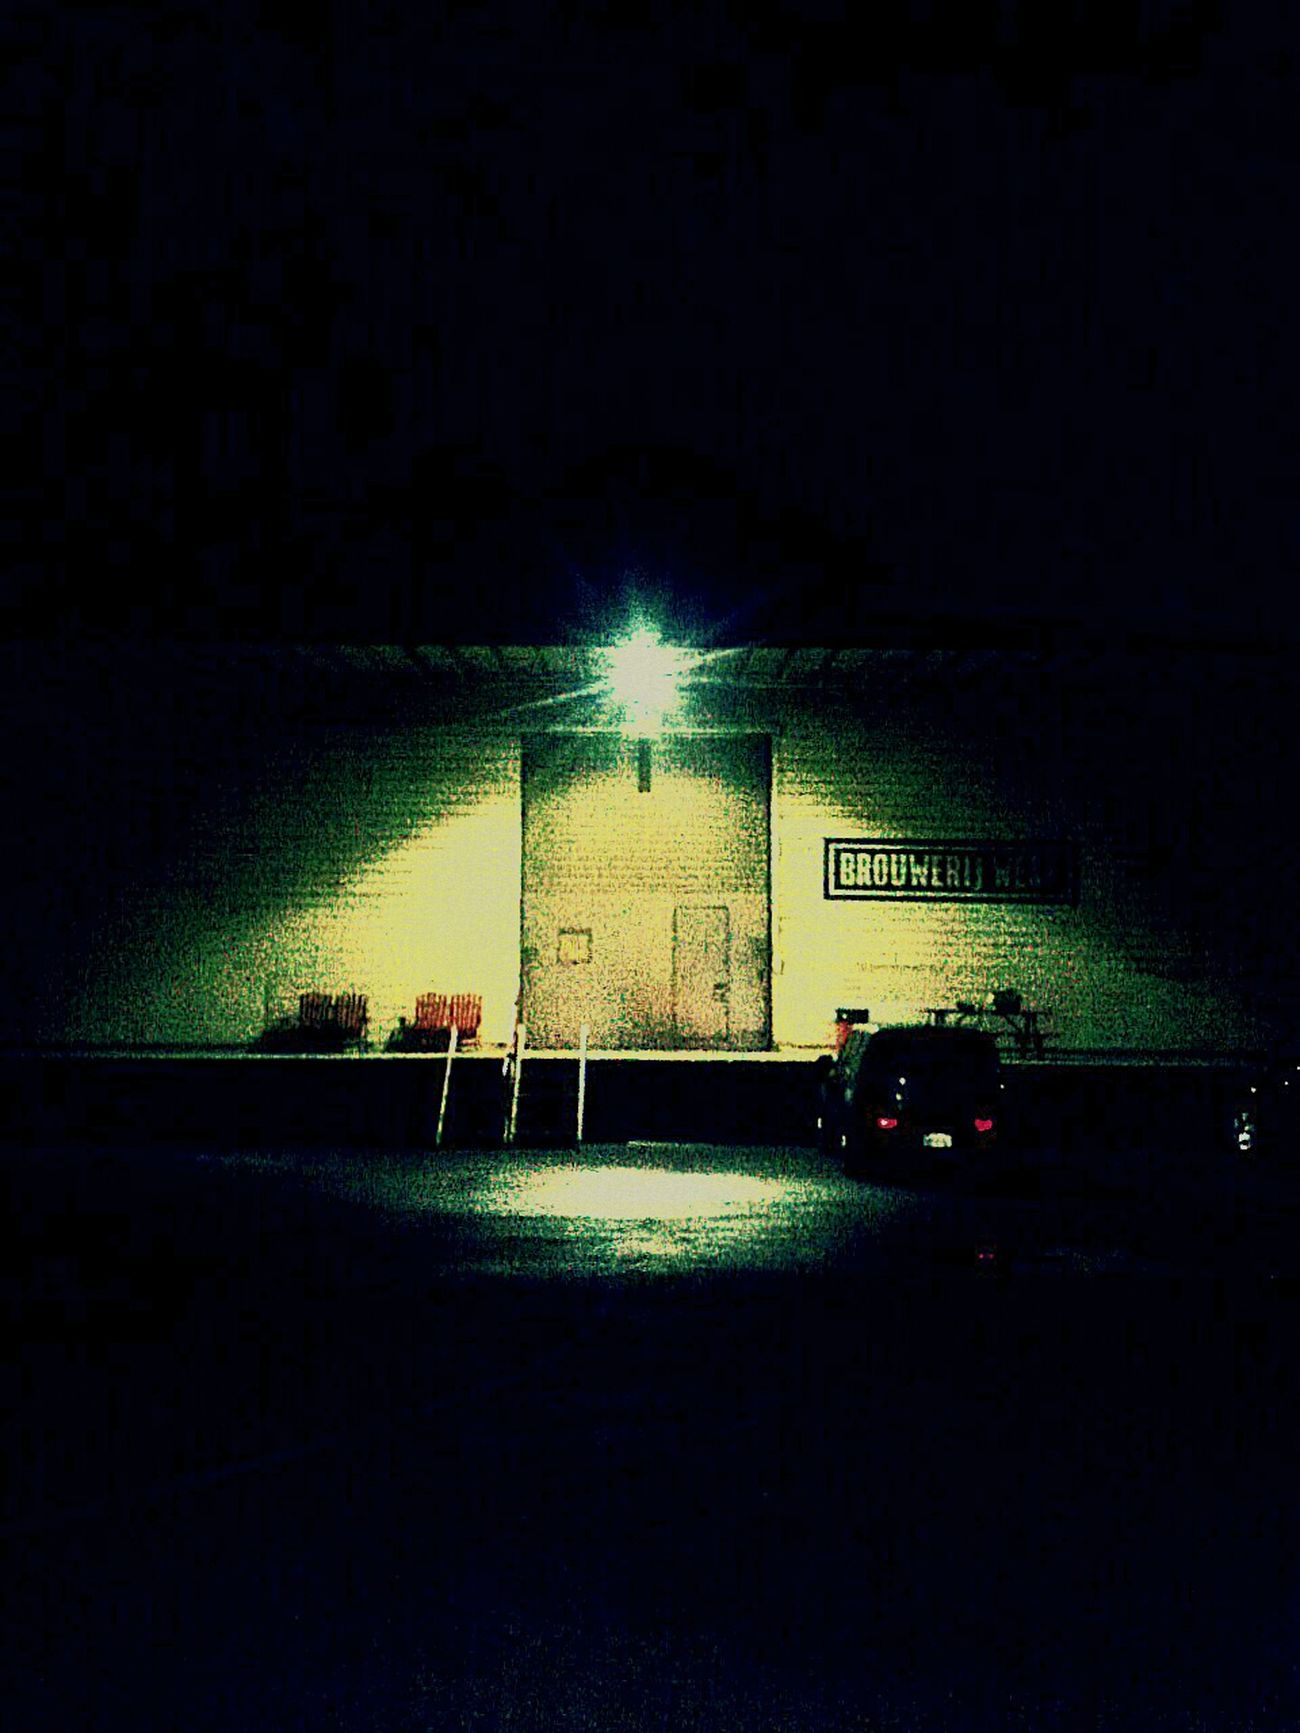 Wherehouse Loadingdock Loading Dock Loadingbay Loading Zone Light And Shadow Lighted Spotlight Spotted Somewhere